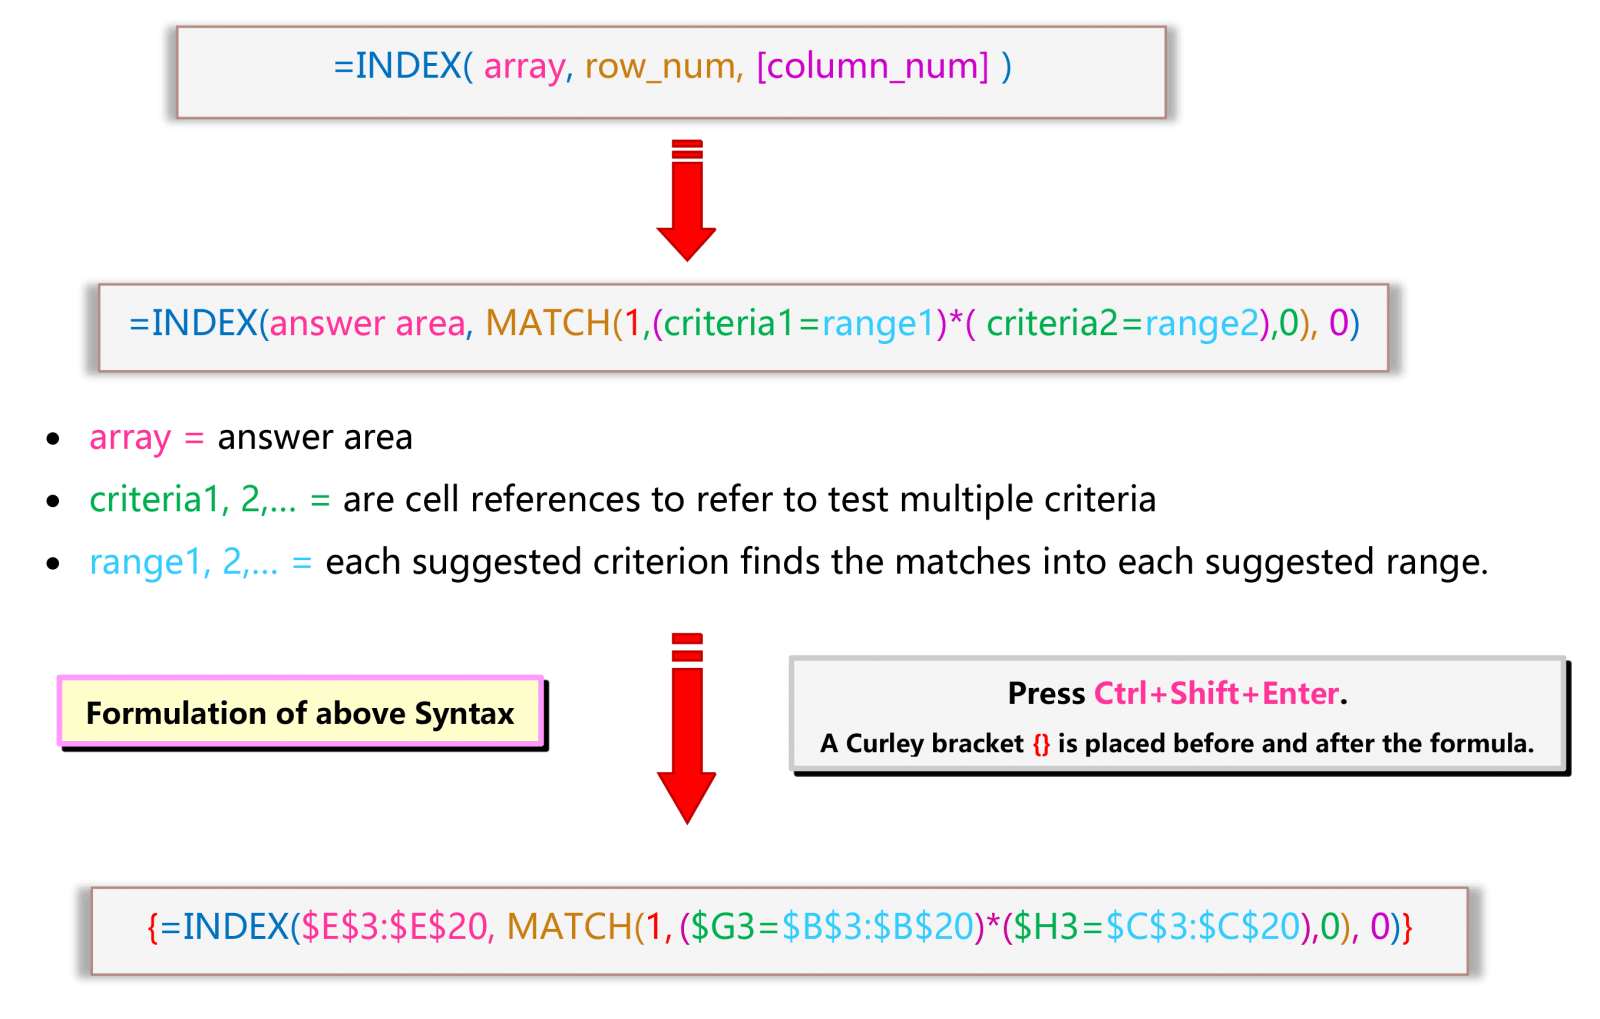 Syntax of Alternative of VLOOKUP Multiple Criteria in Excel with INDEX MATCH Multiple Criteria (Array Formula)